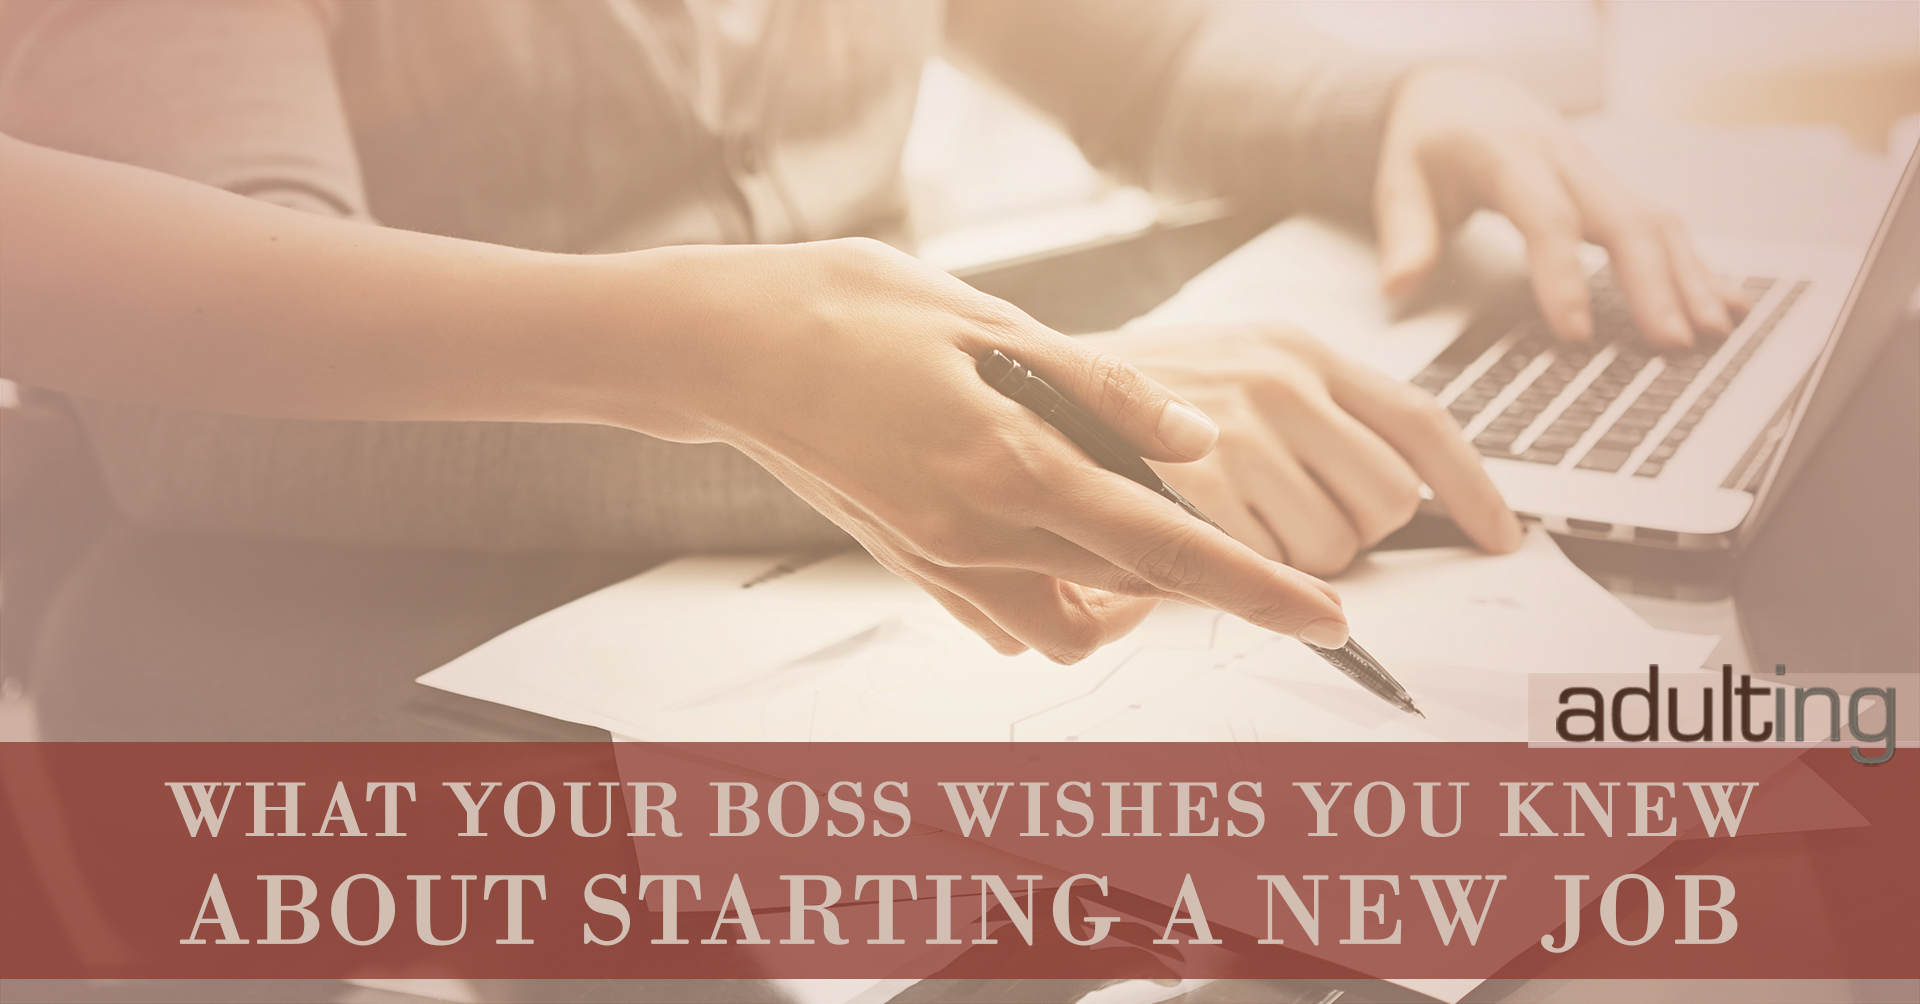 what your new boss wishes you knew about starting a new job adulting